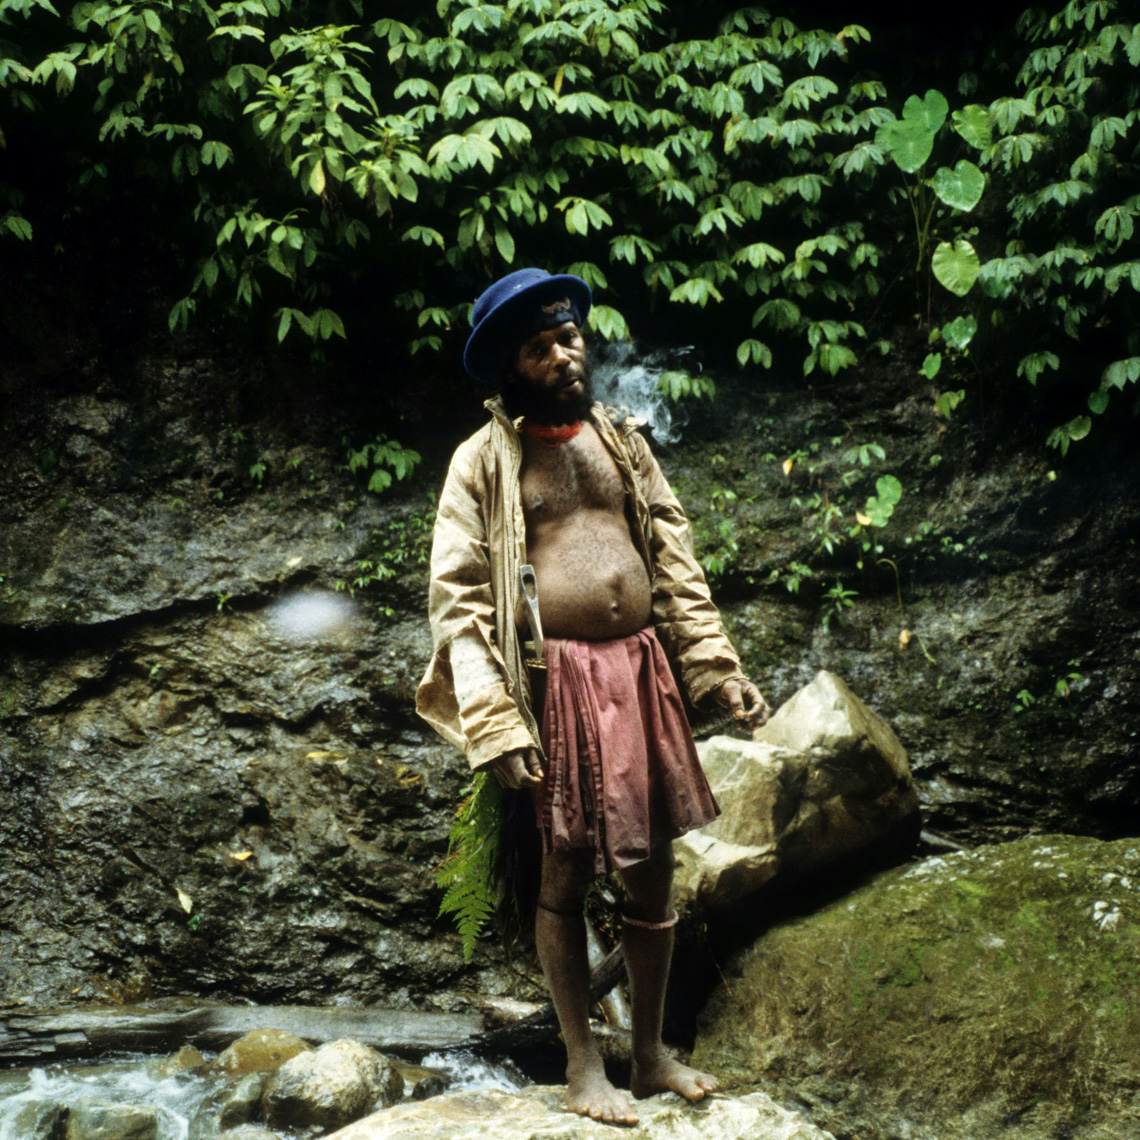 Manyamya Man Smoking Cigarette, On the Hunt for New Guinea Art